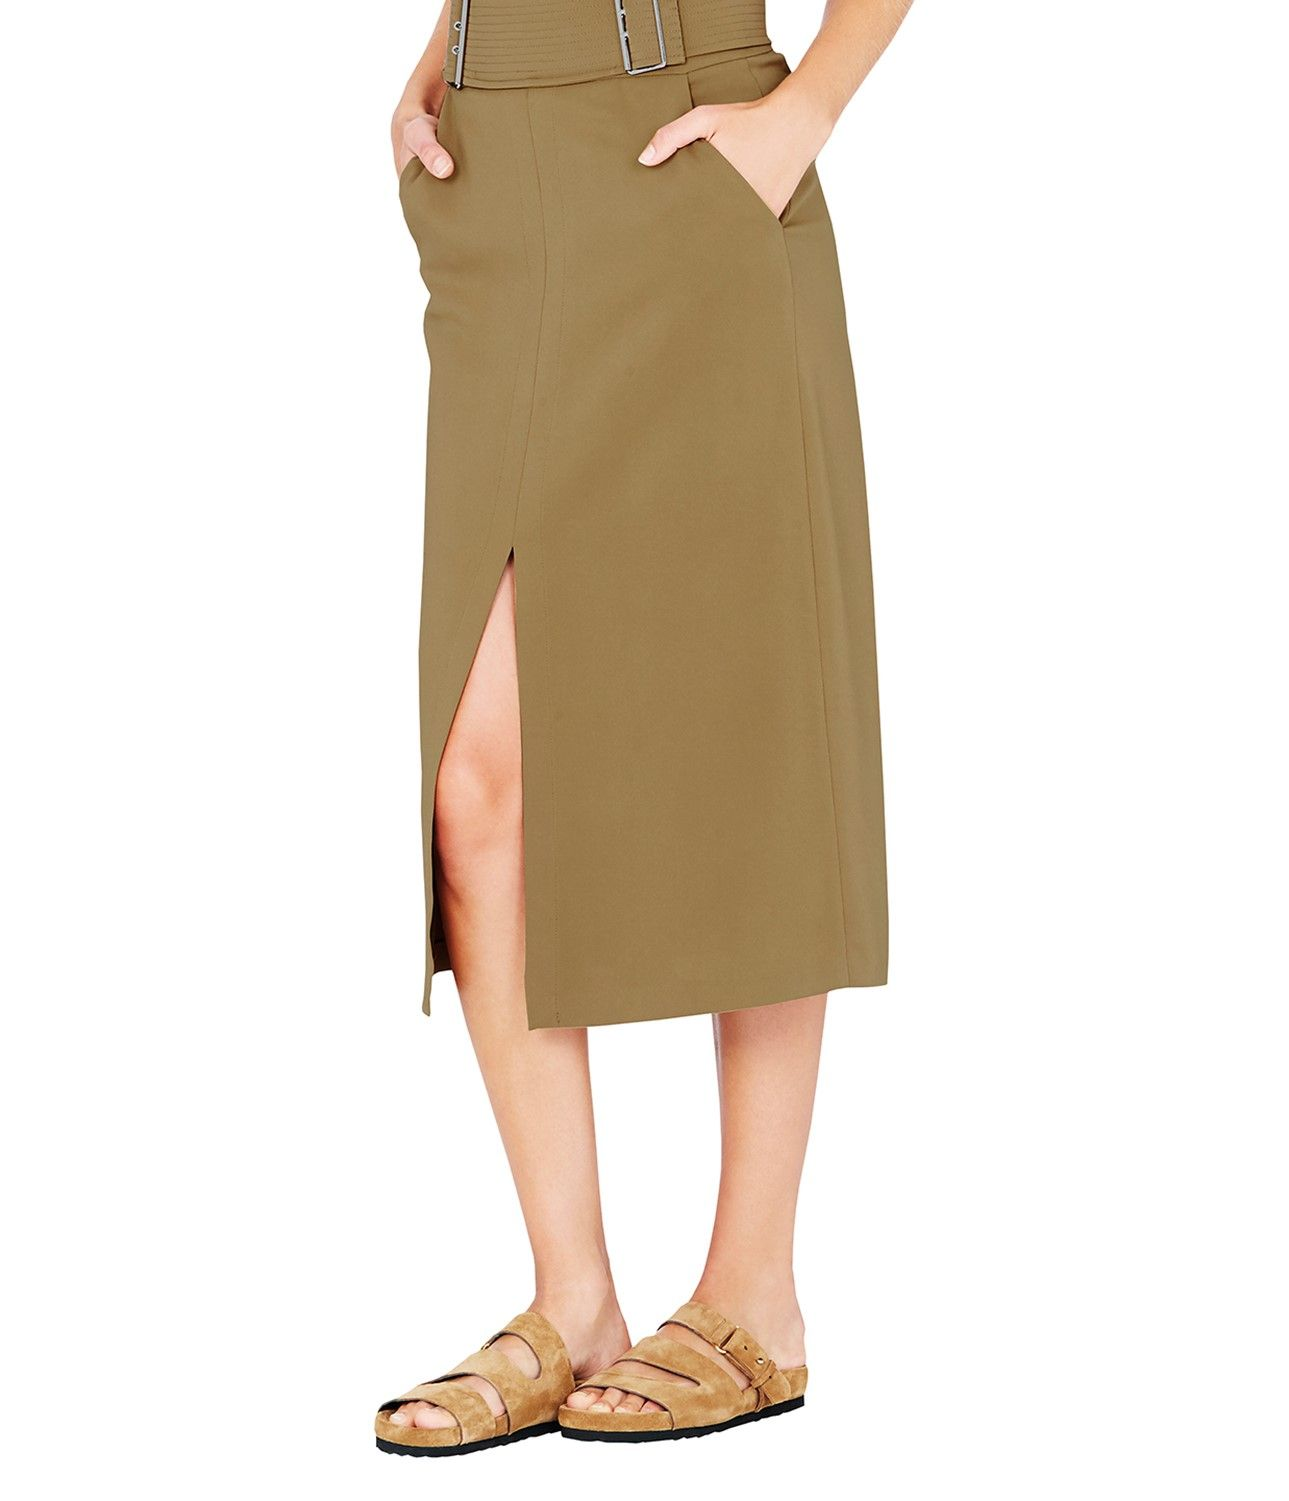 A.L.C Baker Skirt available at Mode Sportif